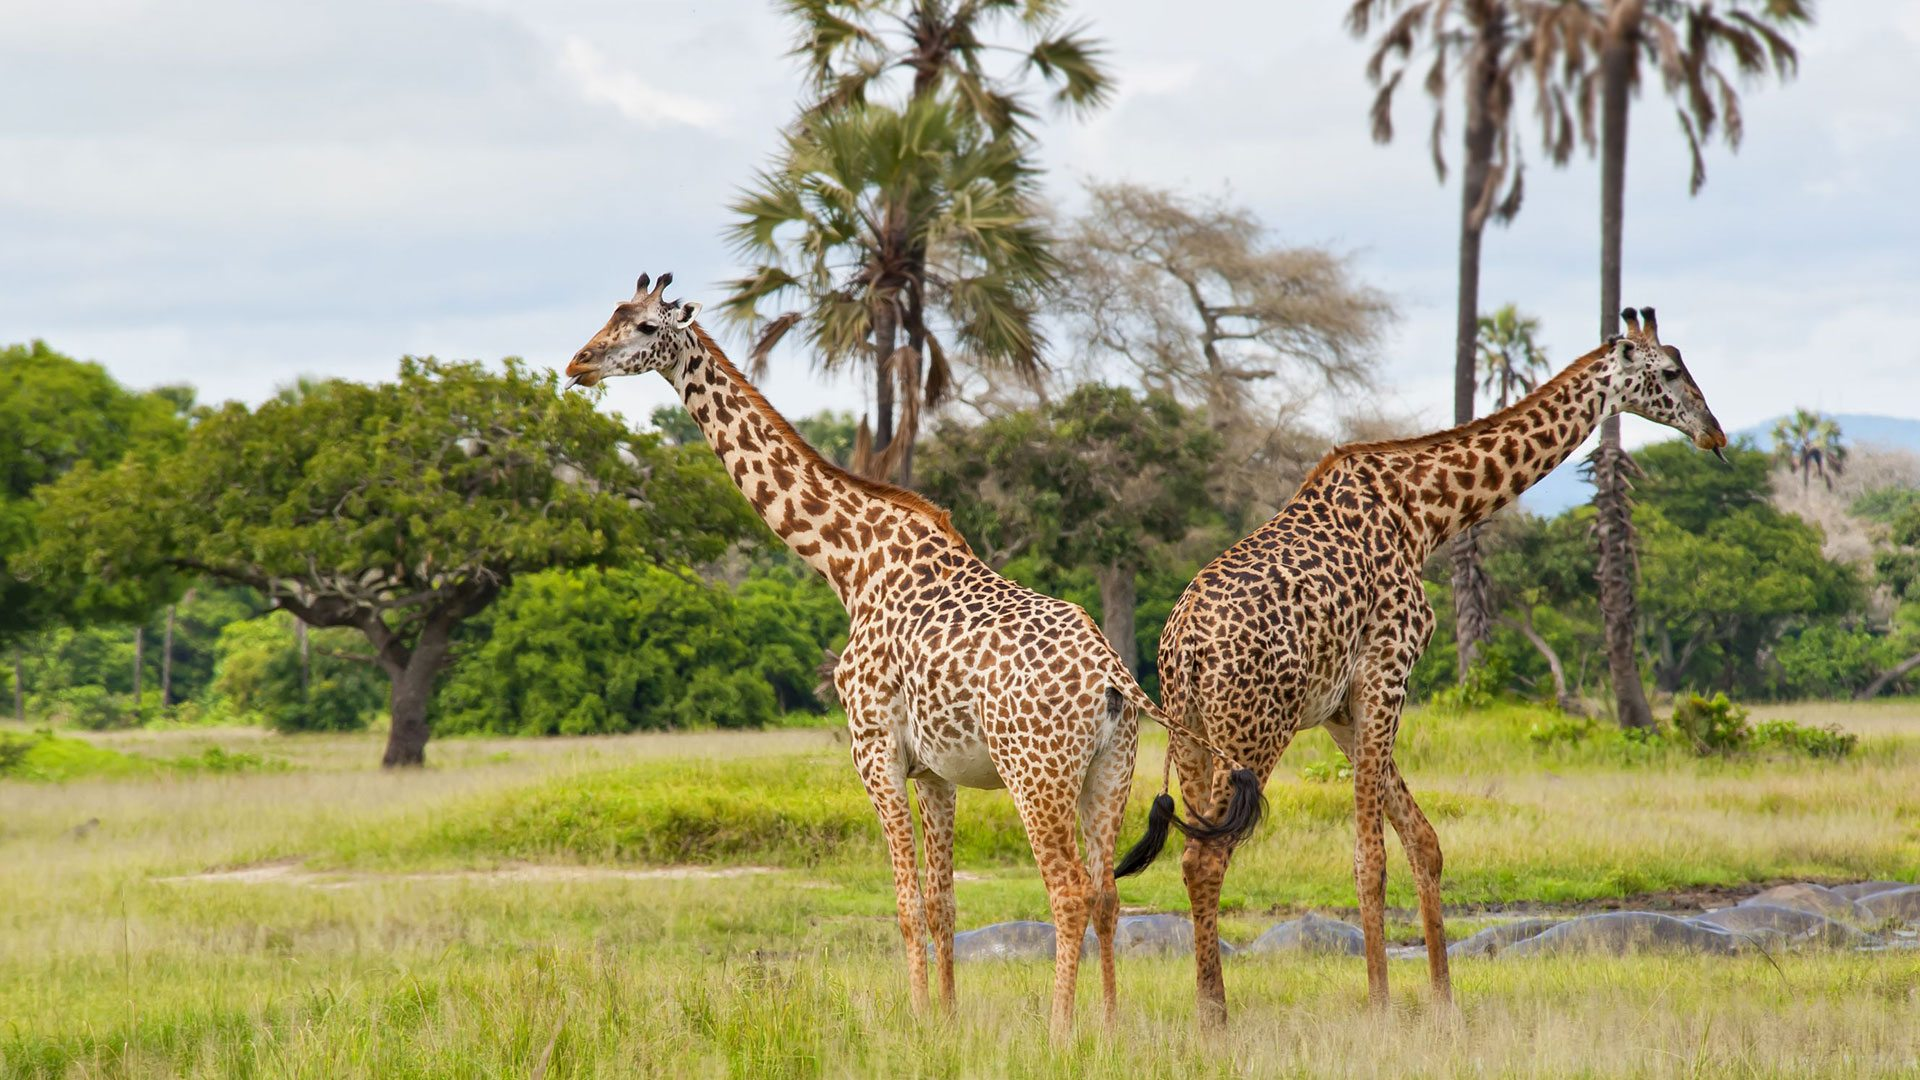 The Best Safaris in Africa Based on Your Profile